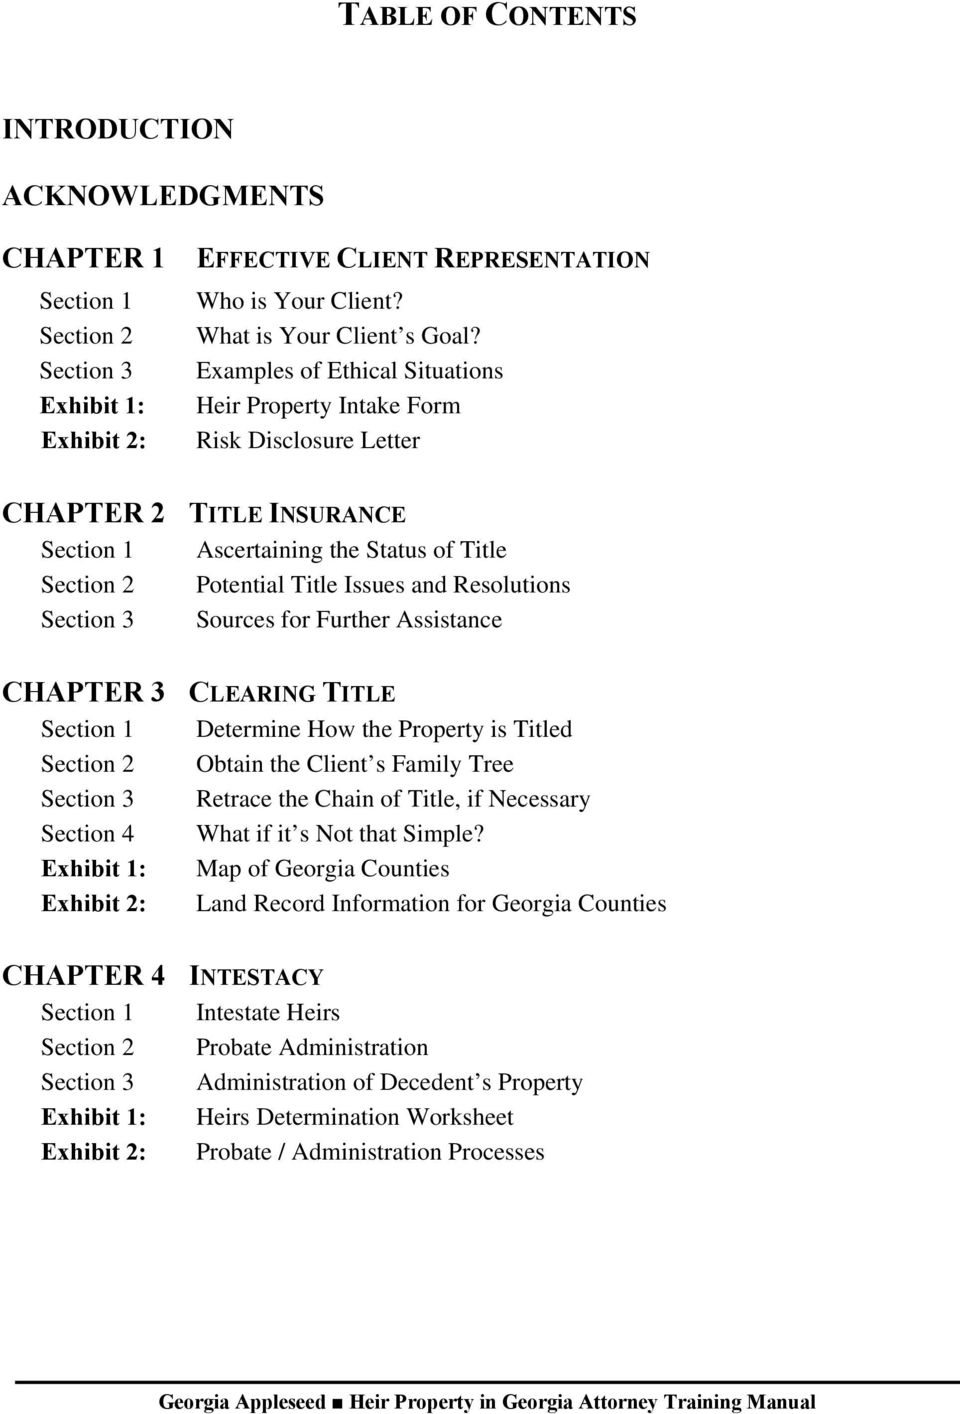 Section 3 Sources for Further Assistance CHAPTER 3 CLEARING TITLE Section 1 Determine How the Property is Titled Section 2 Obtain the Client s Family Tree Section 3 Retrace the Chain of Title, if